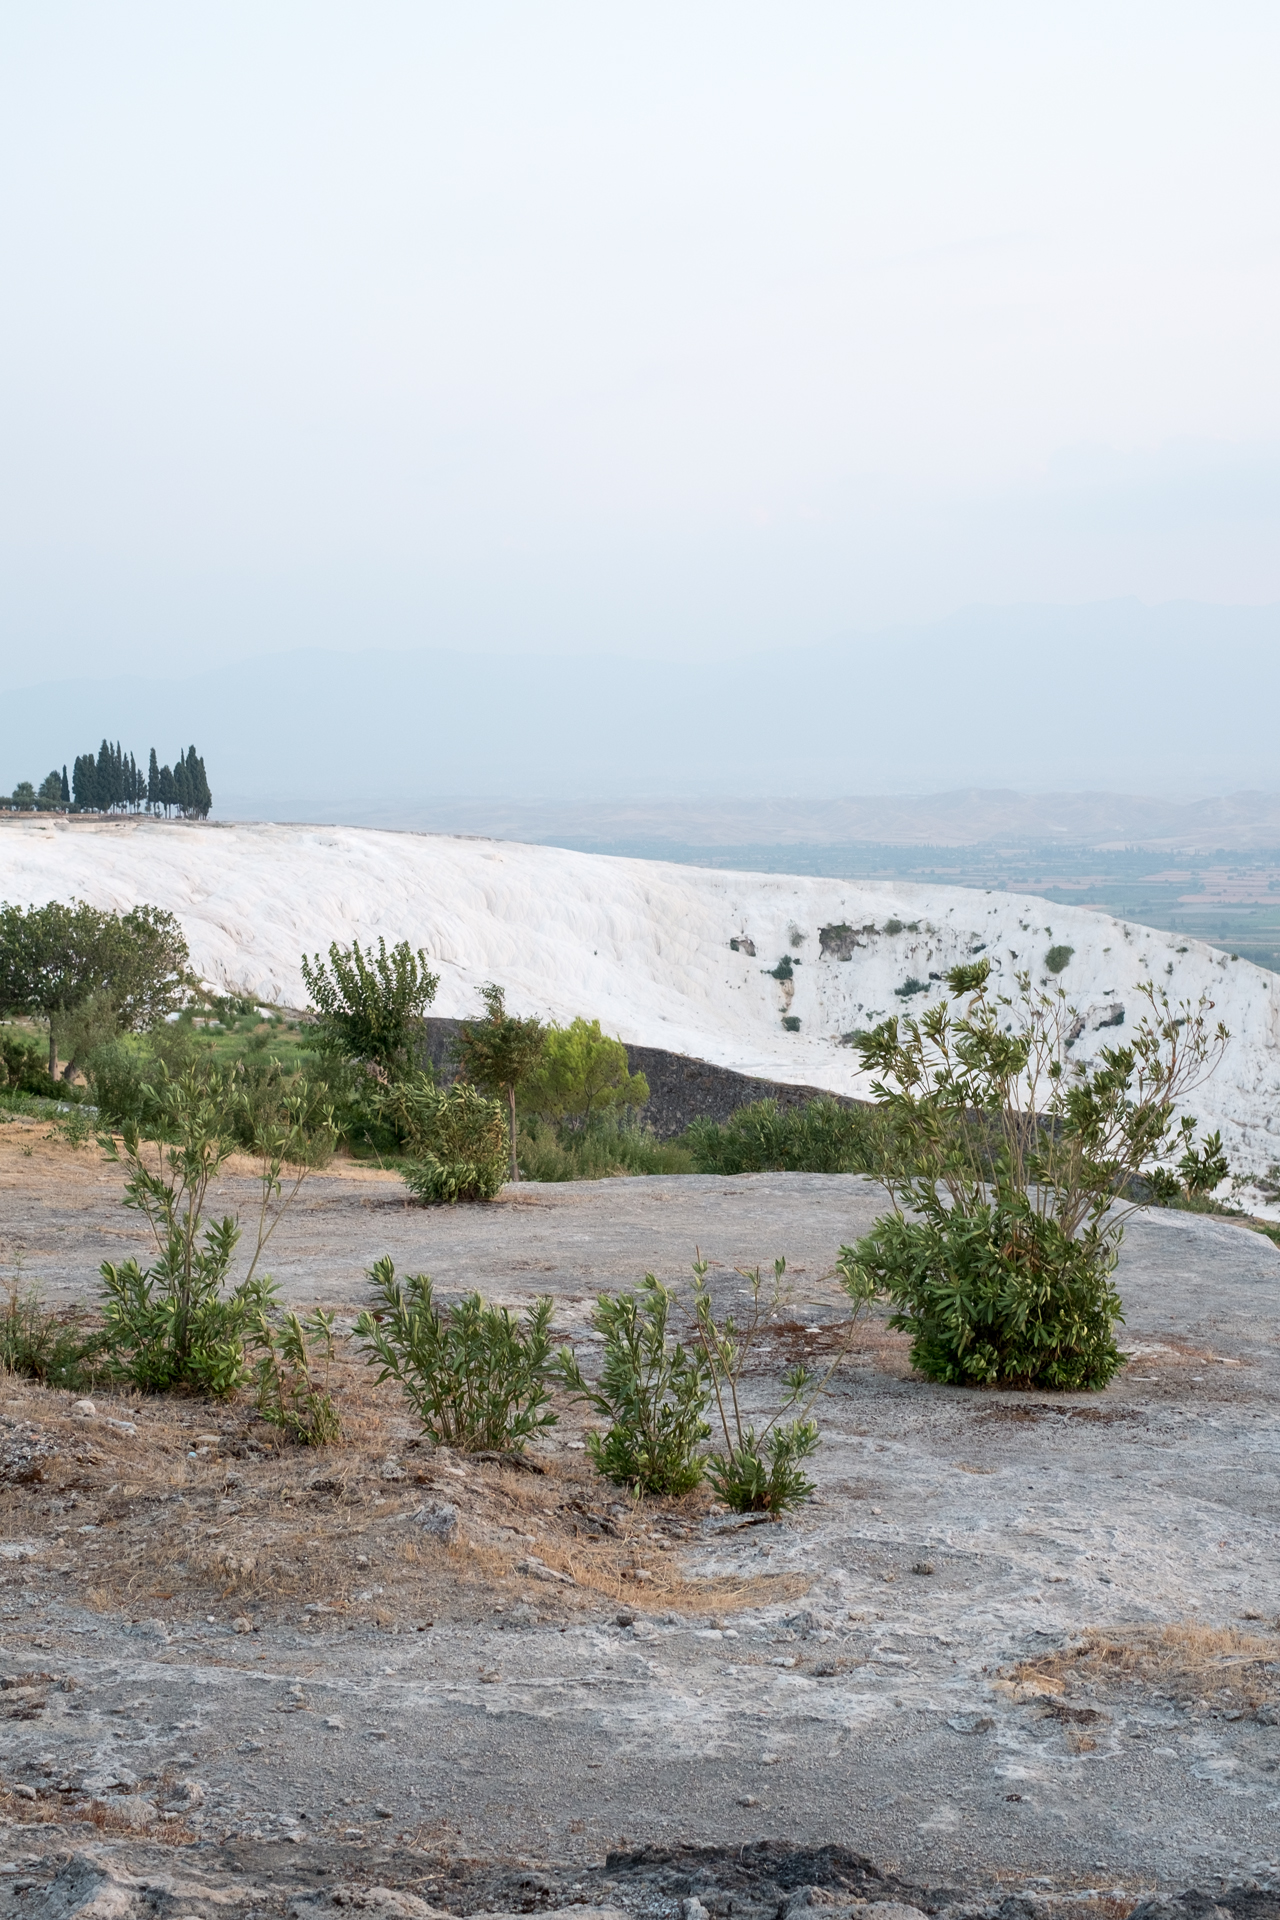 Imaginary Day : Pamukkale 075   pigment print, framed  60 x 40cm, 2013